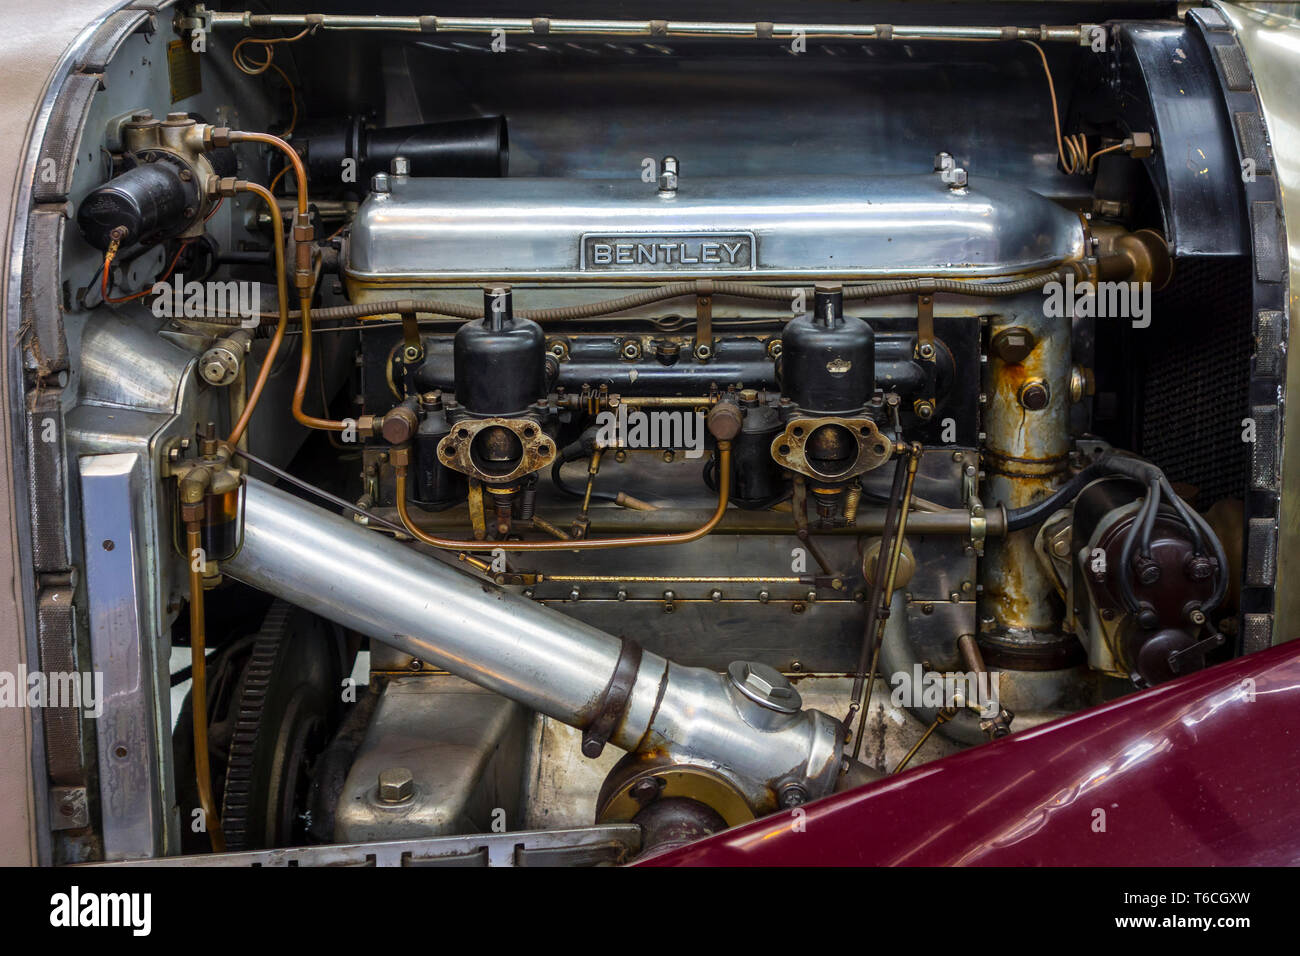 hight resolution of 1928 british inline four engine of bentley 4 litre racing car at autoworld vintage